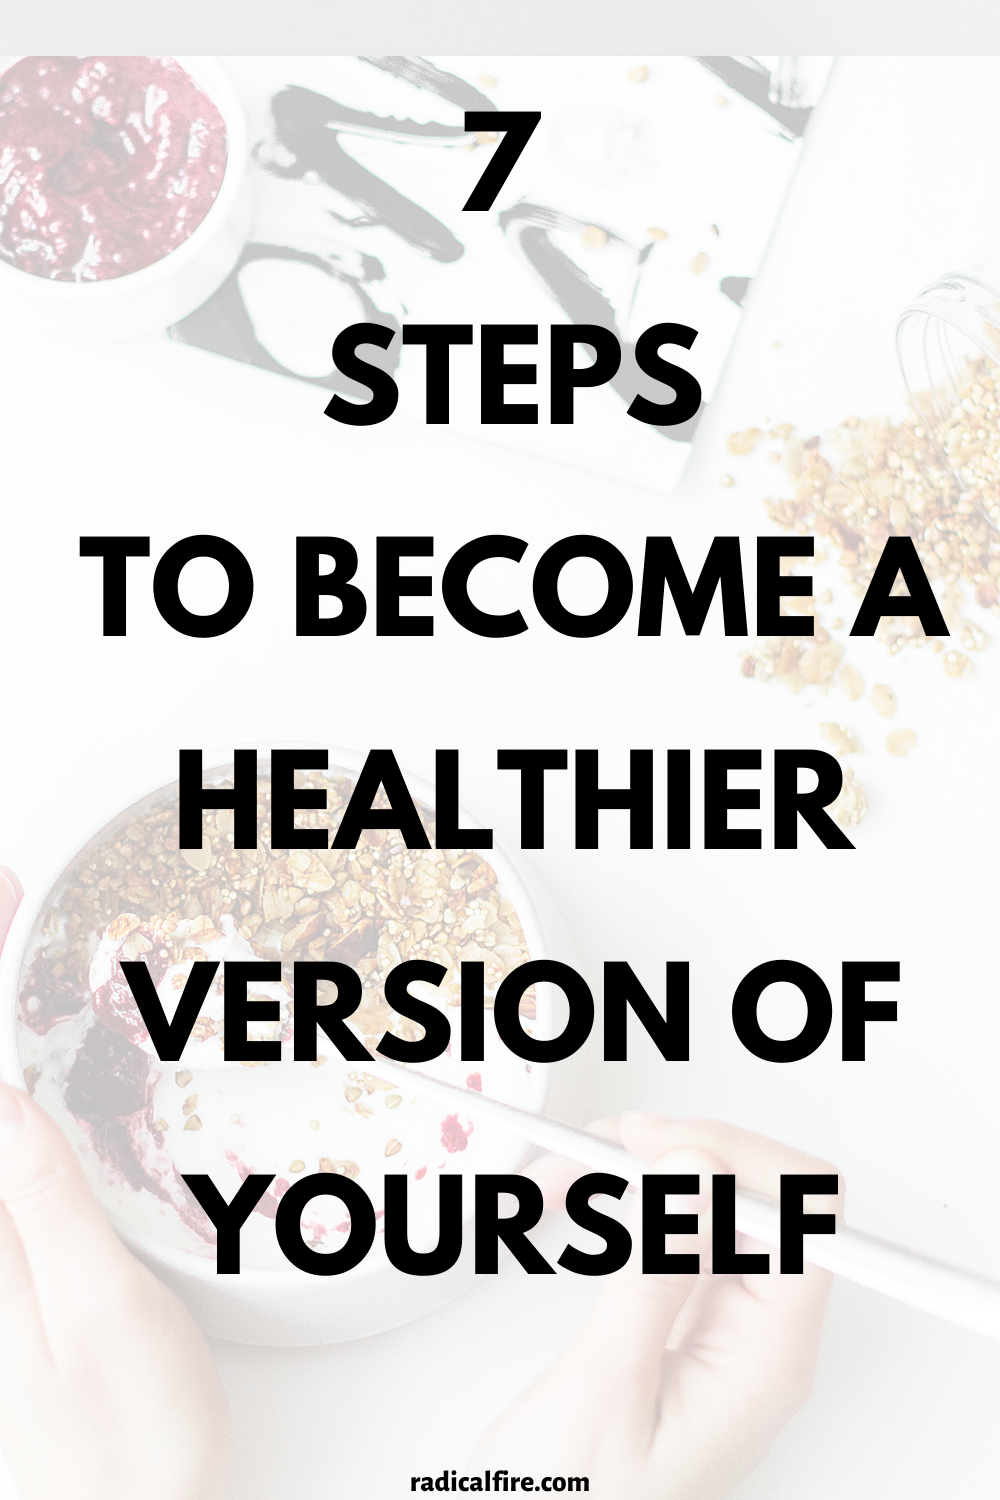 Want to become a healthier version of yourself? Financially and fit? These easy tips will help you d...